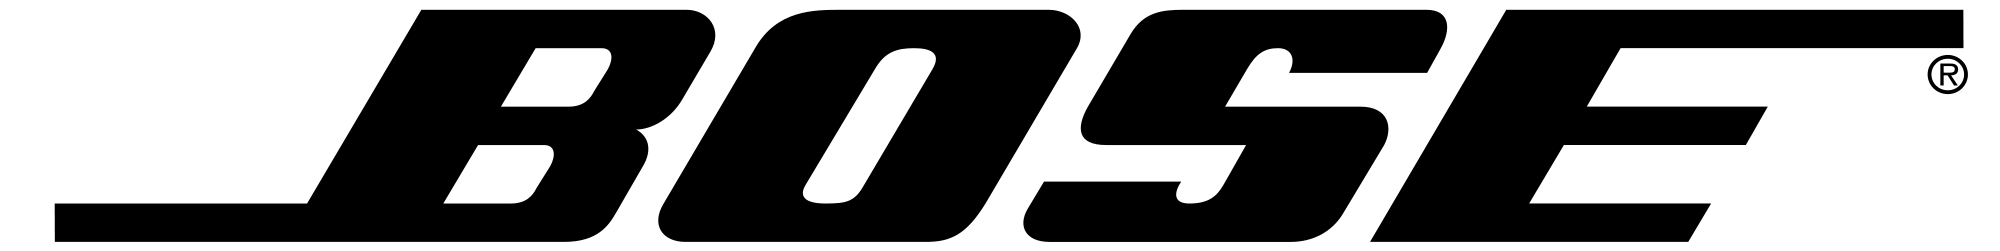 Bose Logo - File:Bose logo.svg - Wikimedia Commons